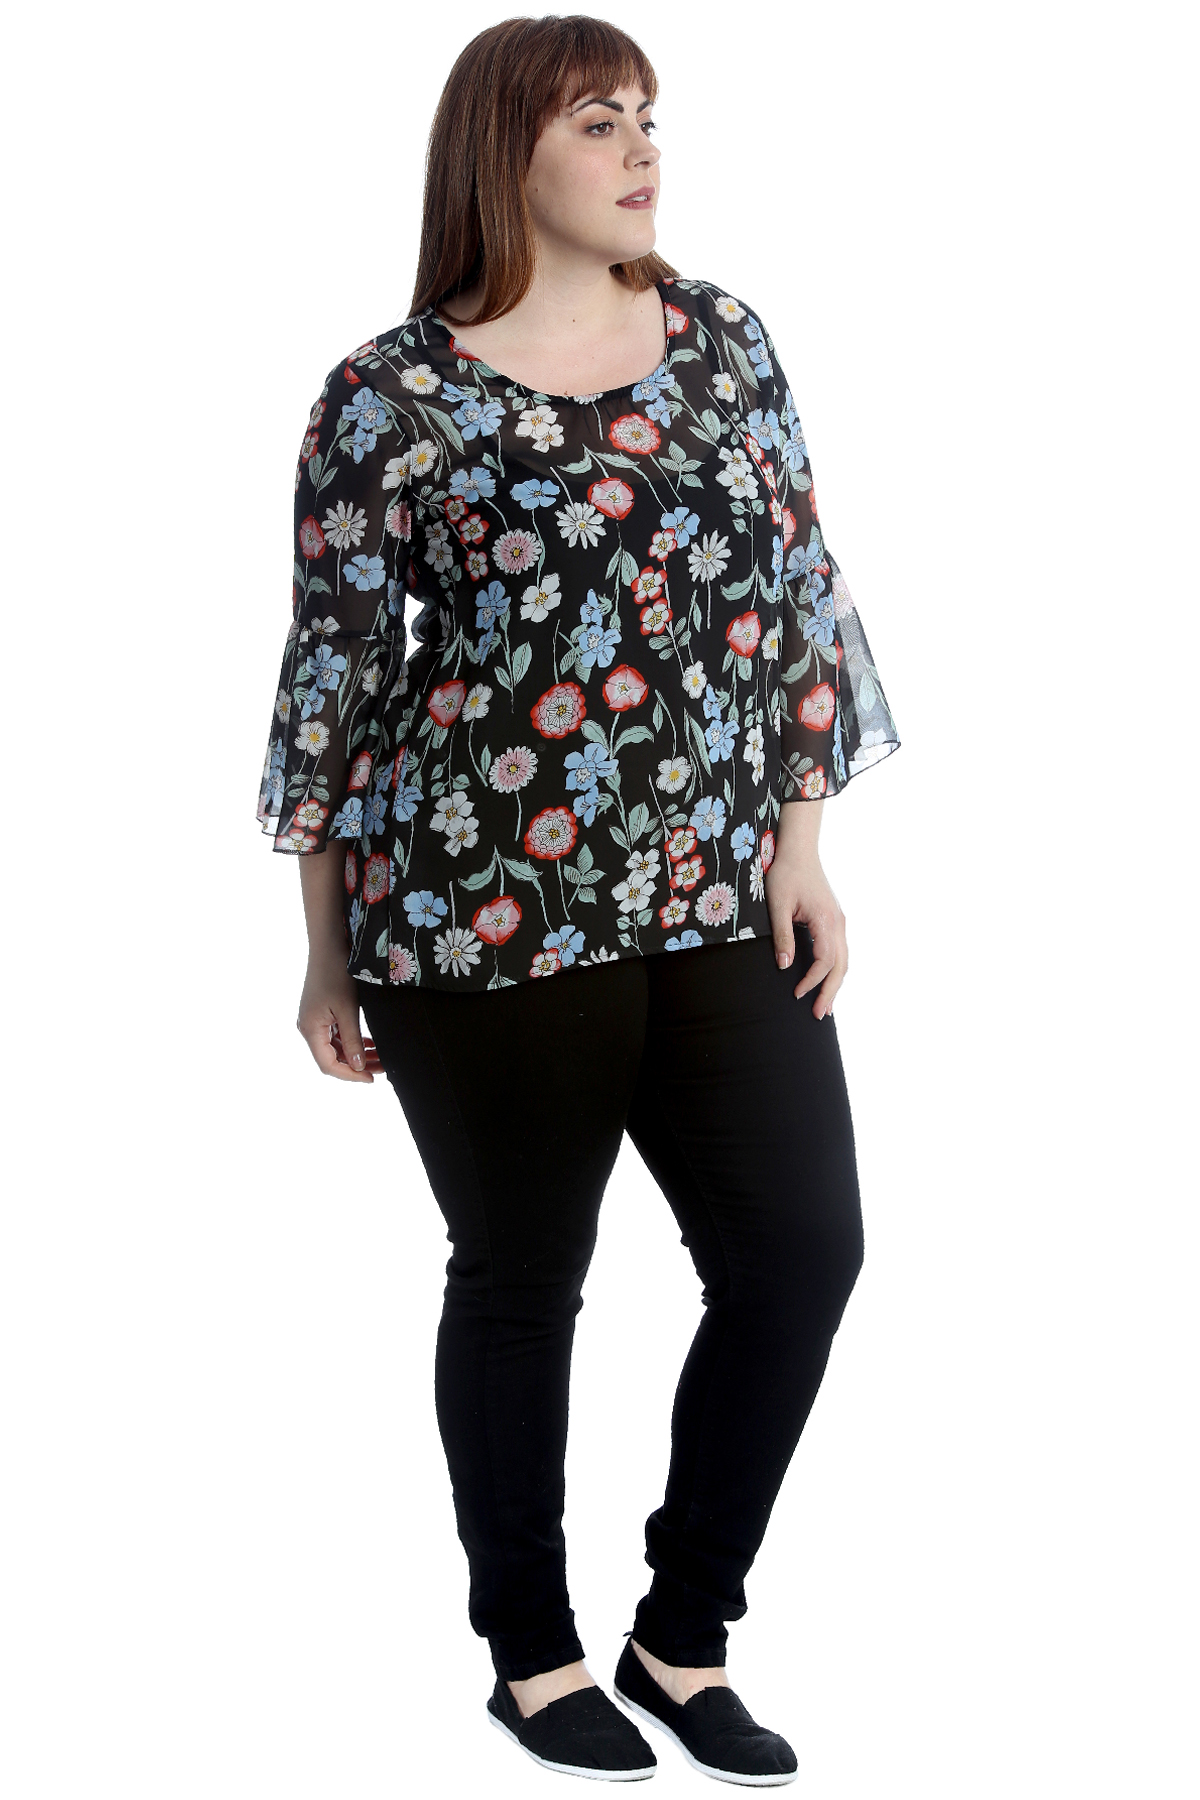 New Womens Plus Size Top Ladies Blouse Multi Floral Print Chiffon Frill Sleeves